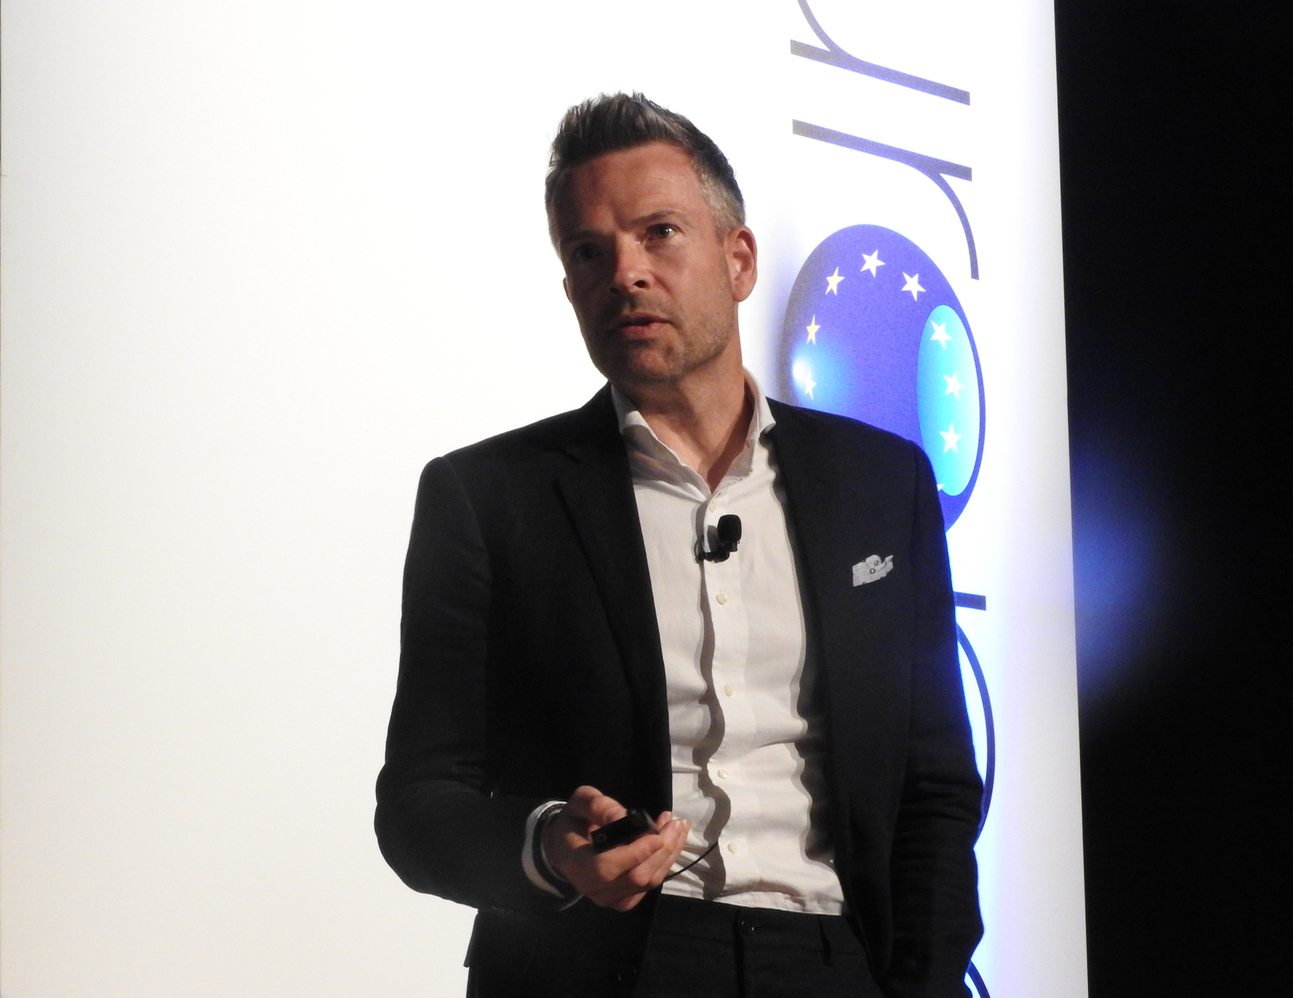 Vue's Kevin Styles speaks at CineEurope's Retail Seminar